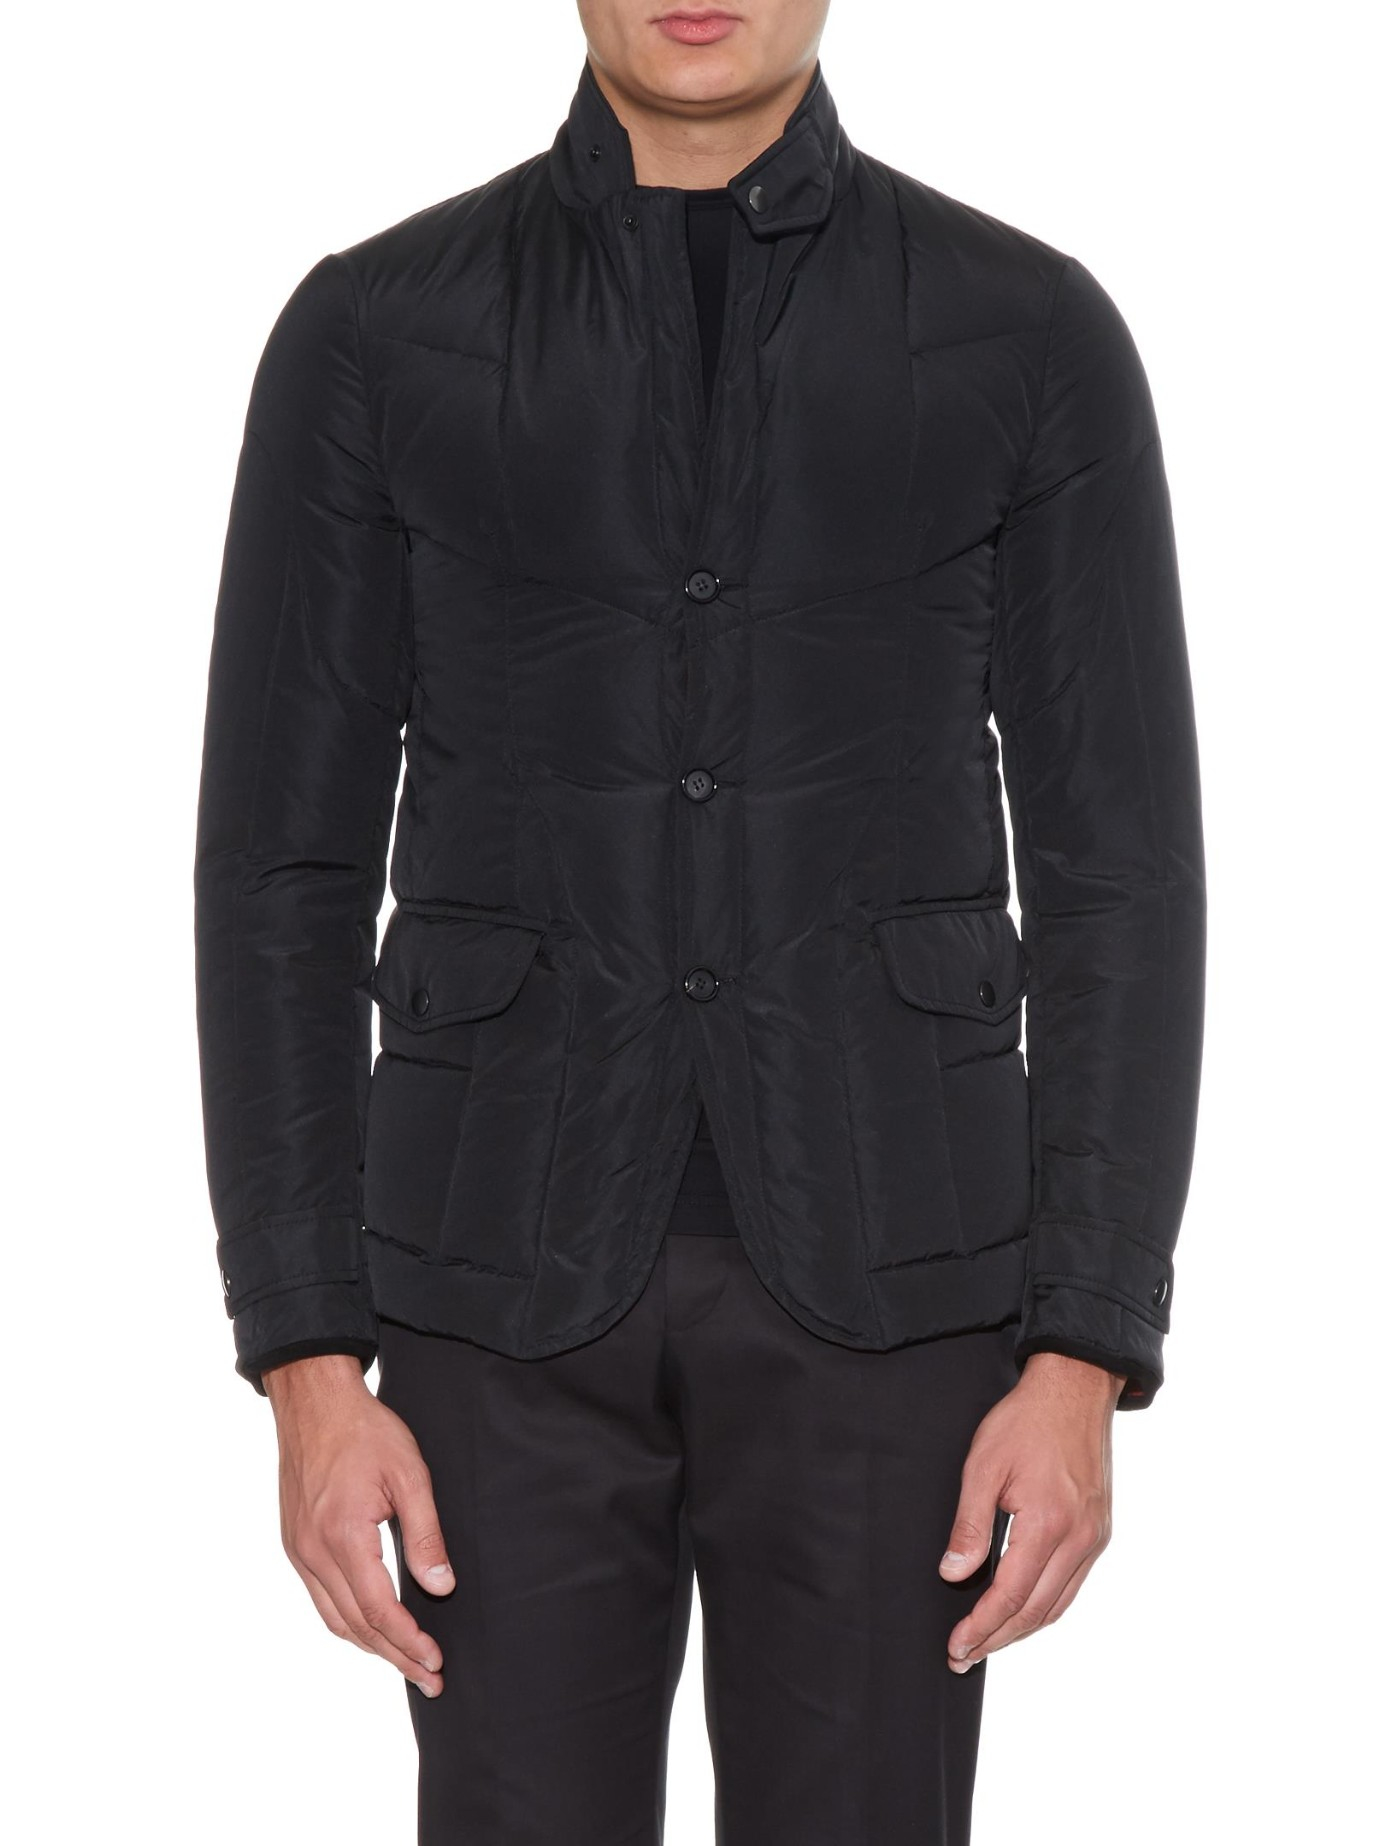 Alexander McQueen Suede Contrast Lining Quilted-down Jacket in Black for Men